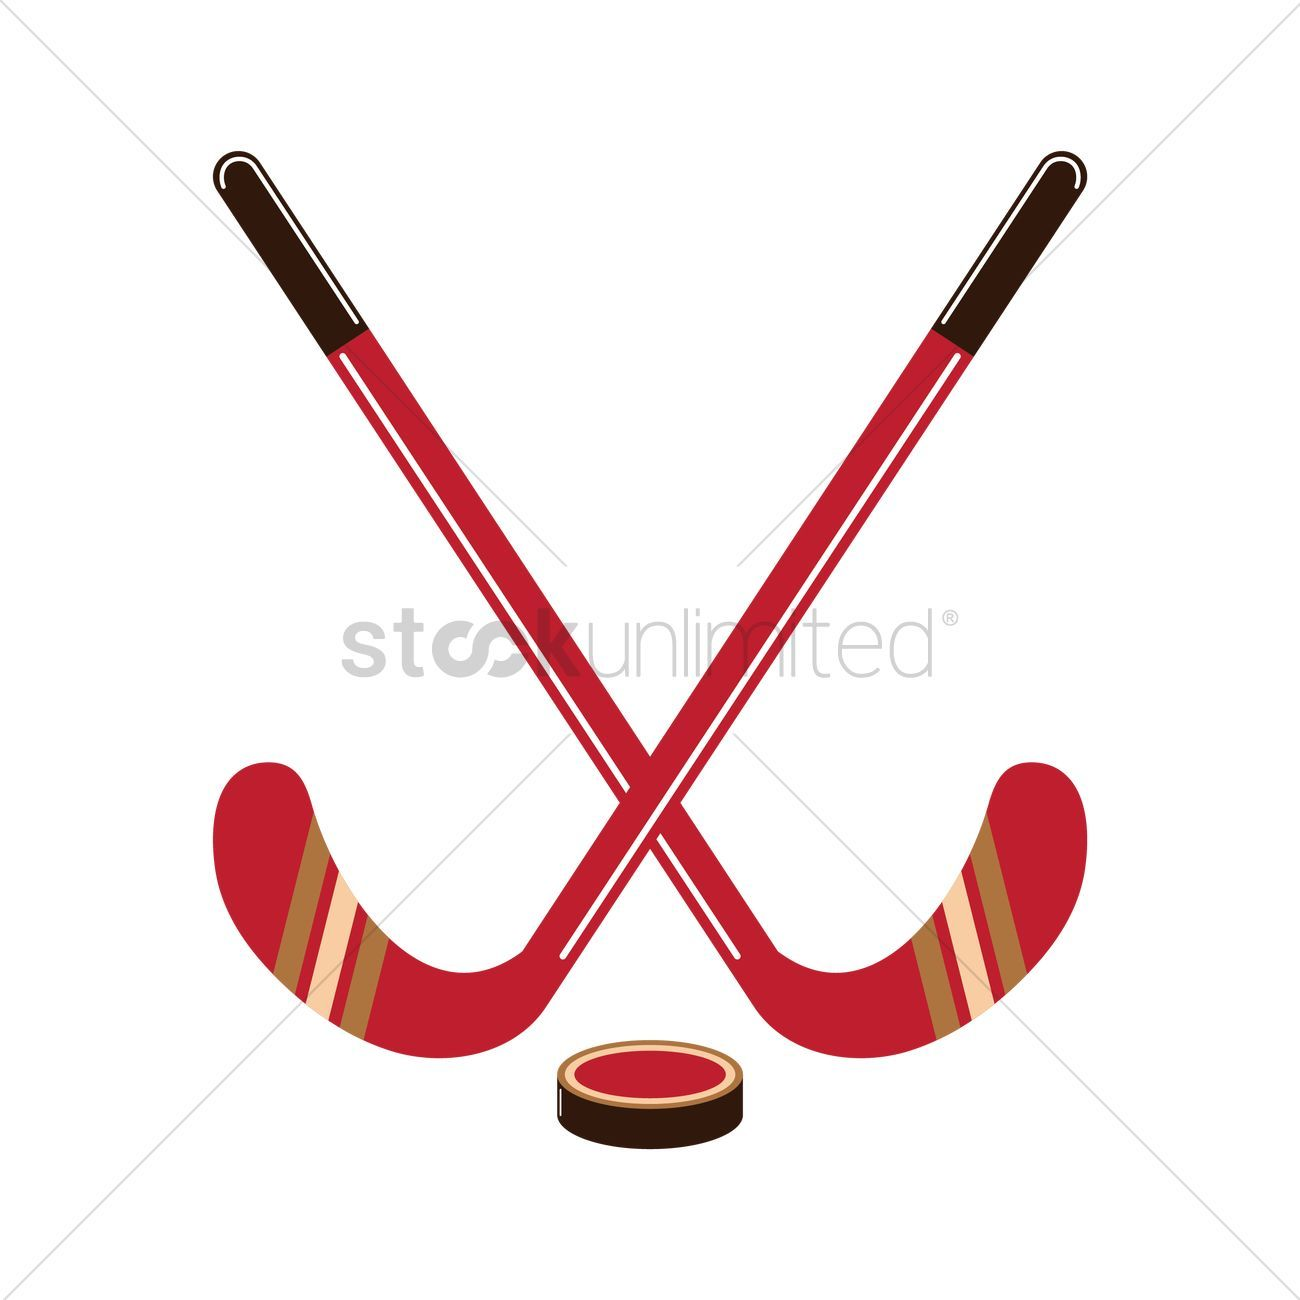 Ice Hockey Sticks And Puck Vectors Stock Clipart Affiliate Sticks Hockey Ice Puck Clipart Affiliate Ice Hockey Sticks Hockey Stick Ice Hockey